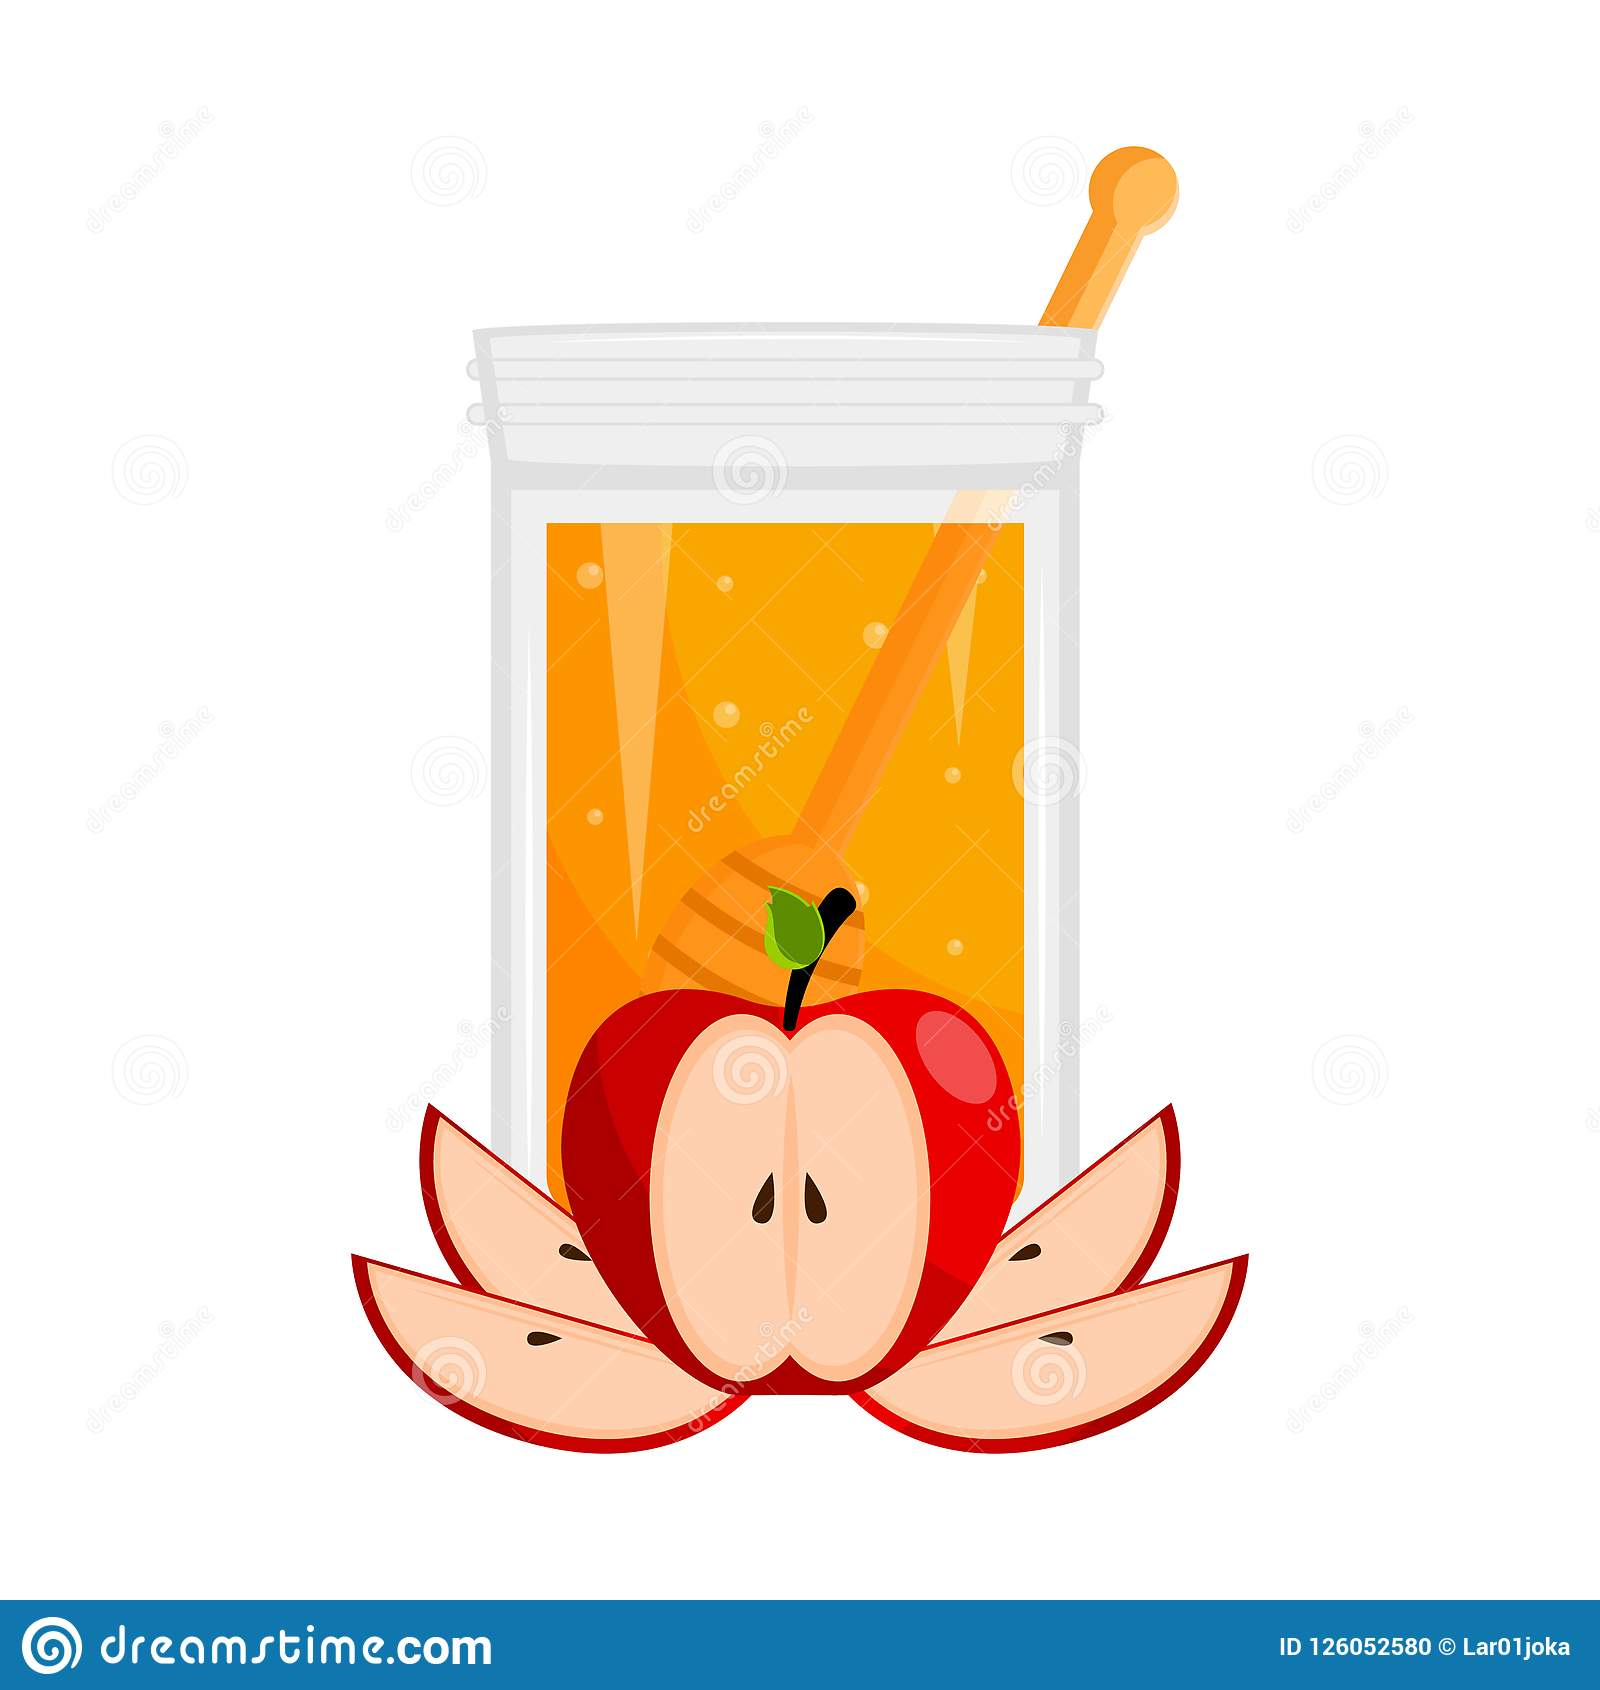 Rosh hashanah vector illustration design